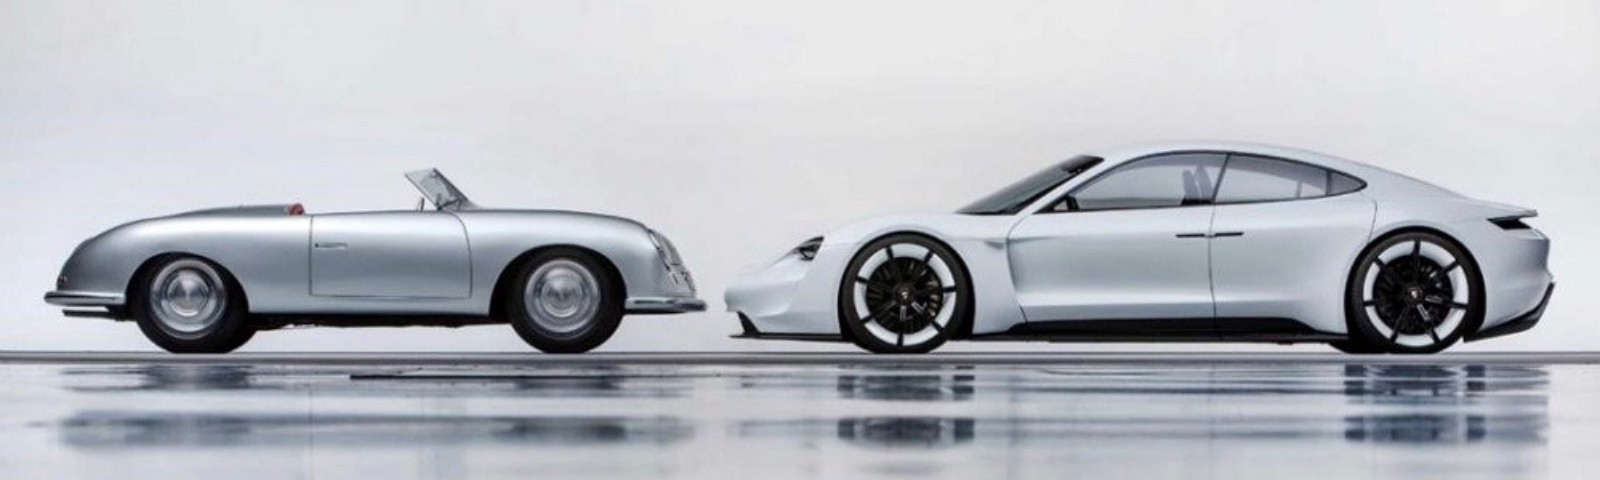 Two cars facing each other, on the left an old Porsche 356, on the right the electric prototype Mission E of 2018